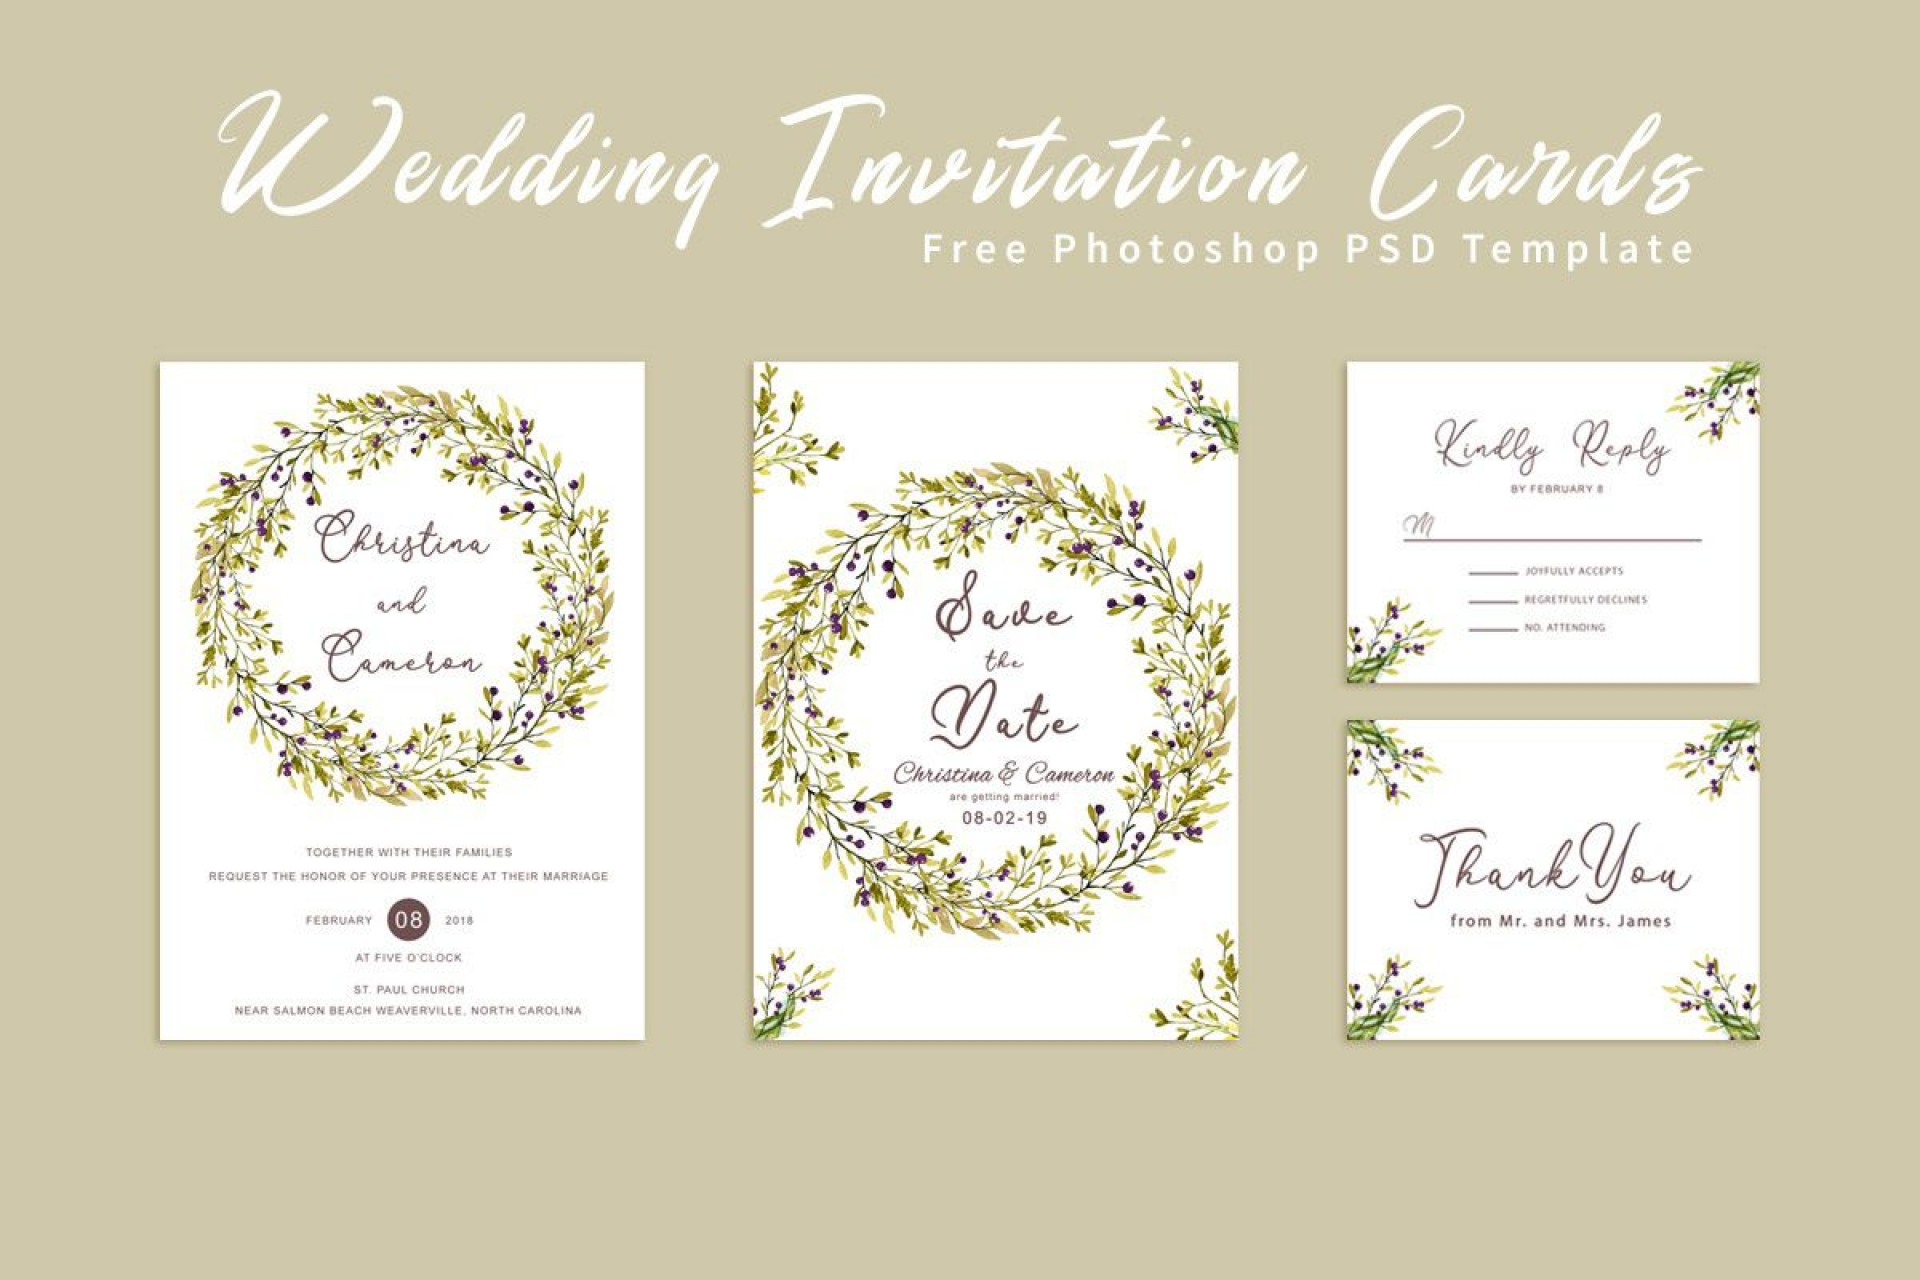 006 Stunning Free Wedding Invitation Template High Definition  Printable Download Wording Uk Format1920